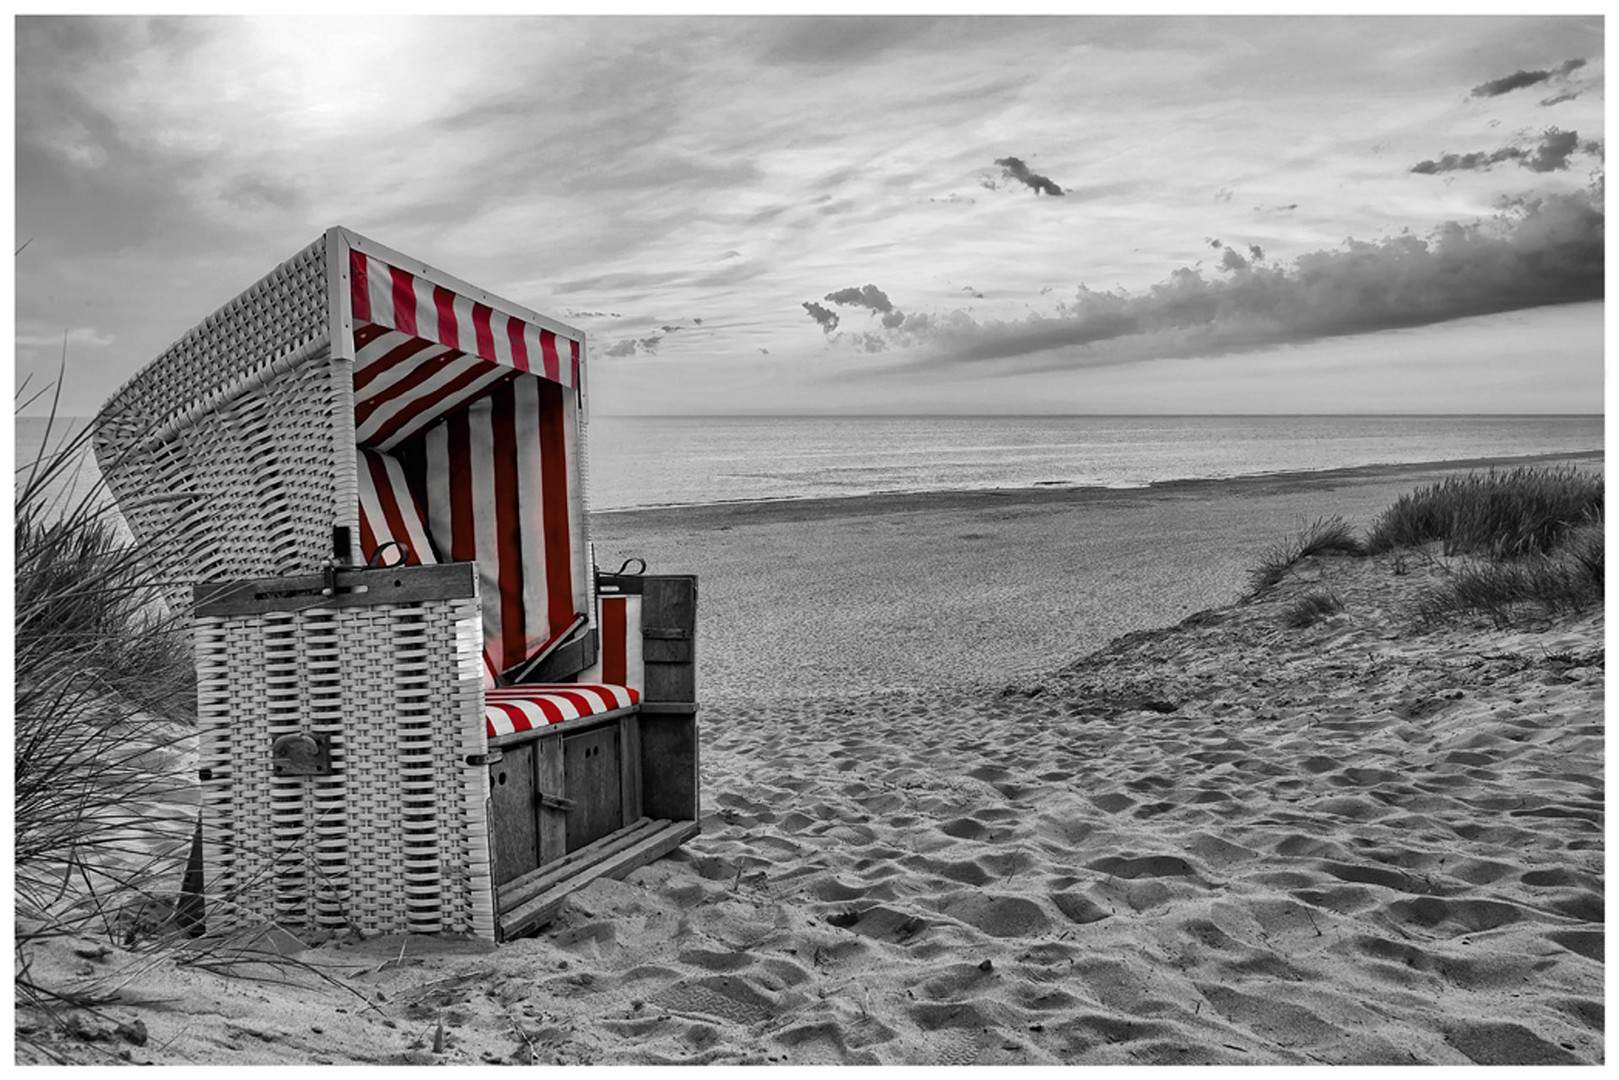 strandkorb am strand von sylt schwarz weiss teilcoloiert foto bild deutschland europe. Black Bedroom Furniture Sets. Home Design Ideas